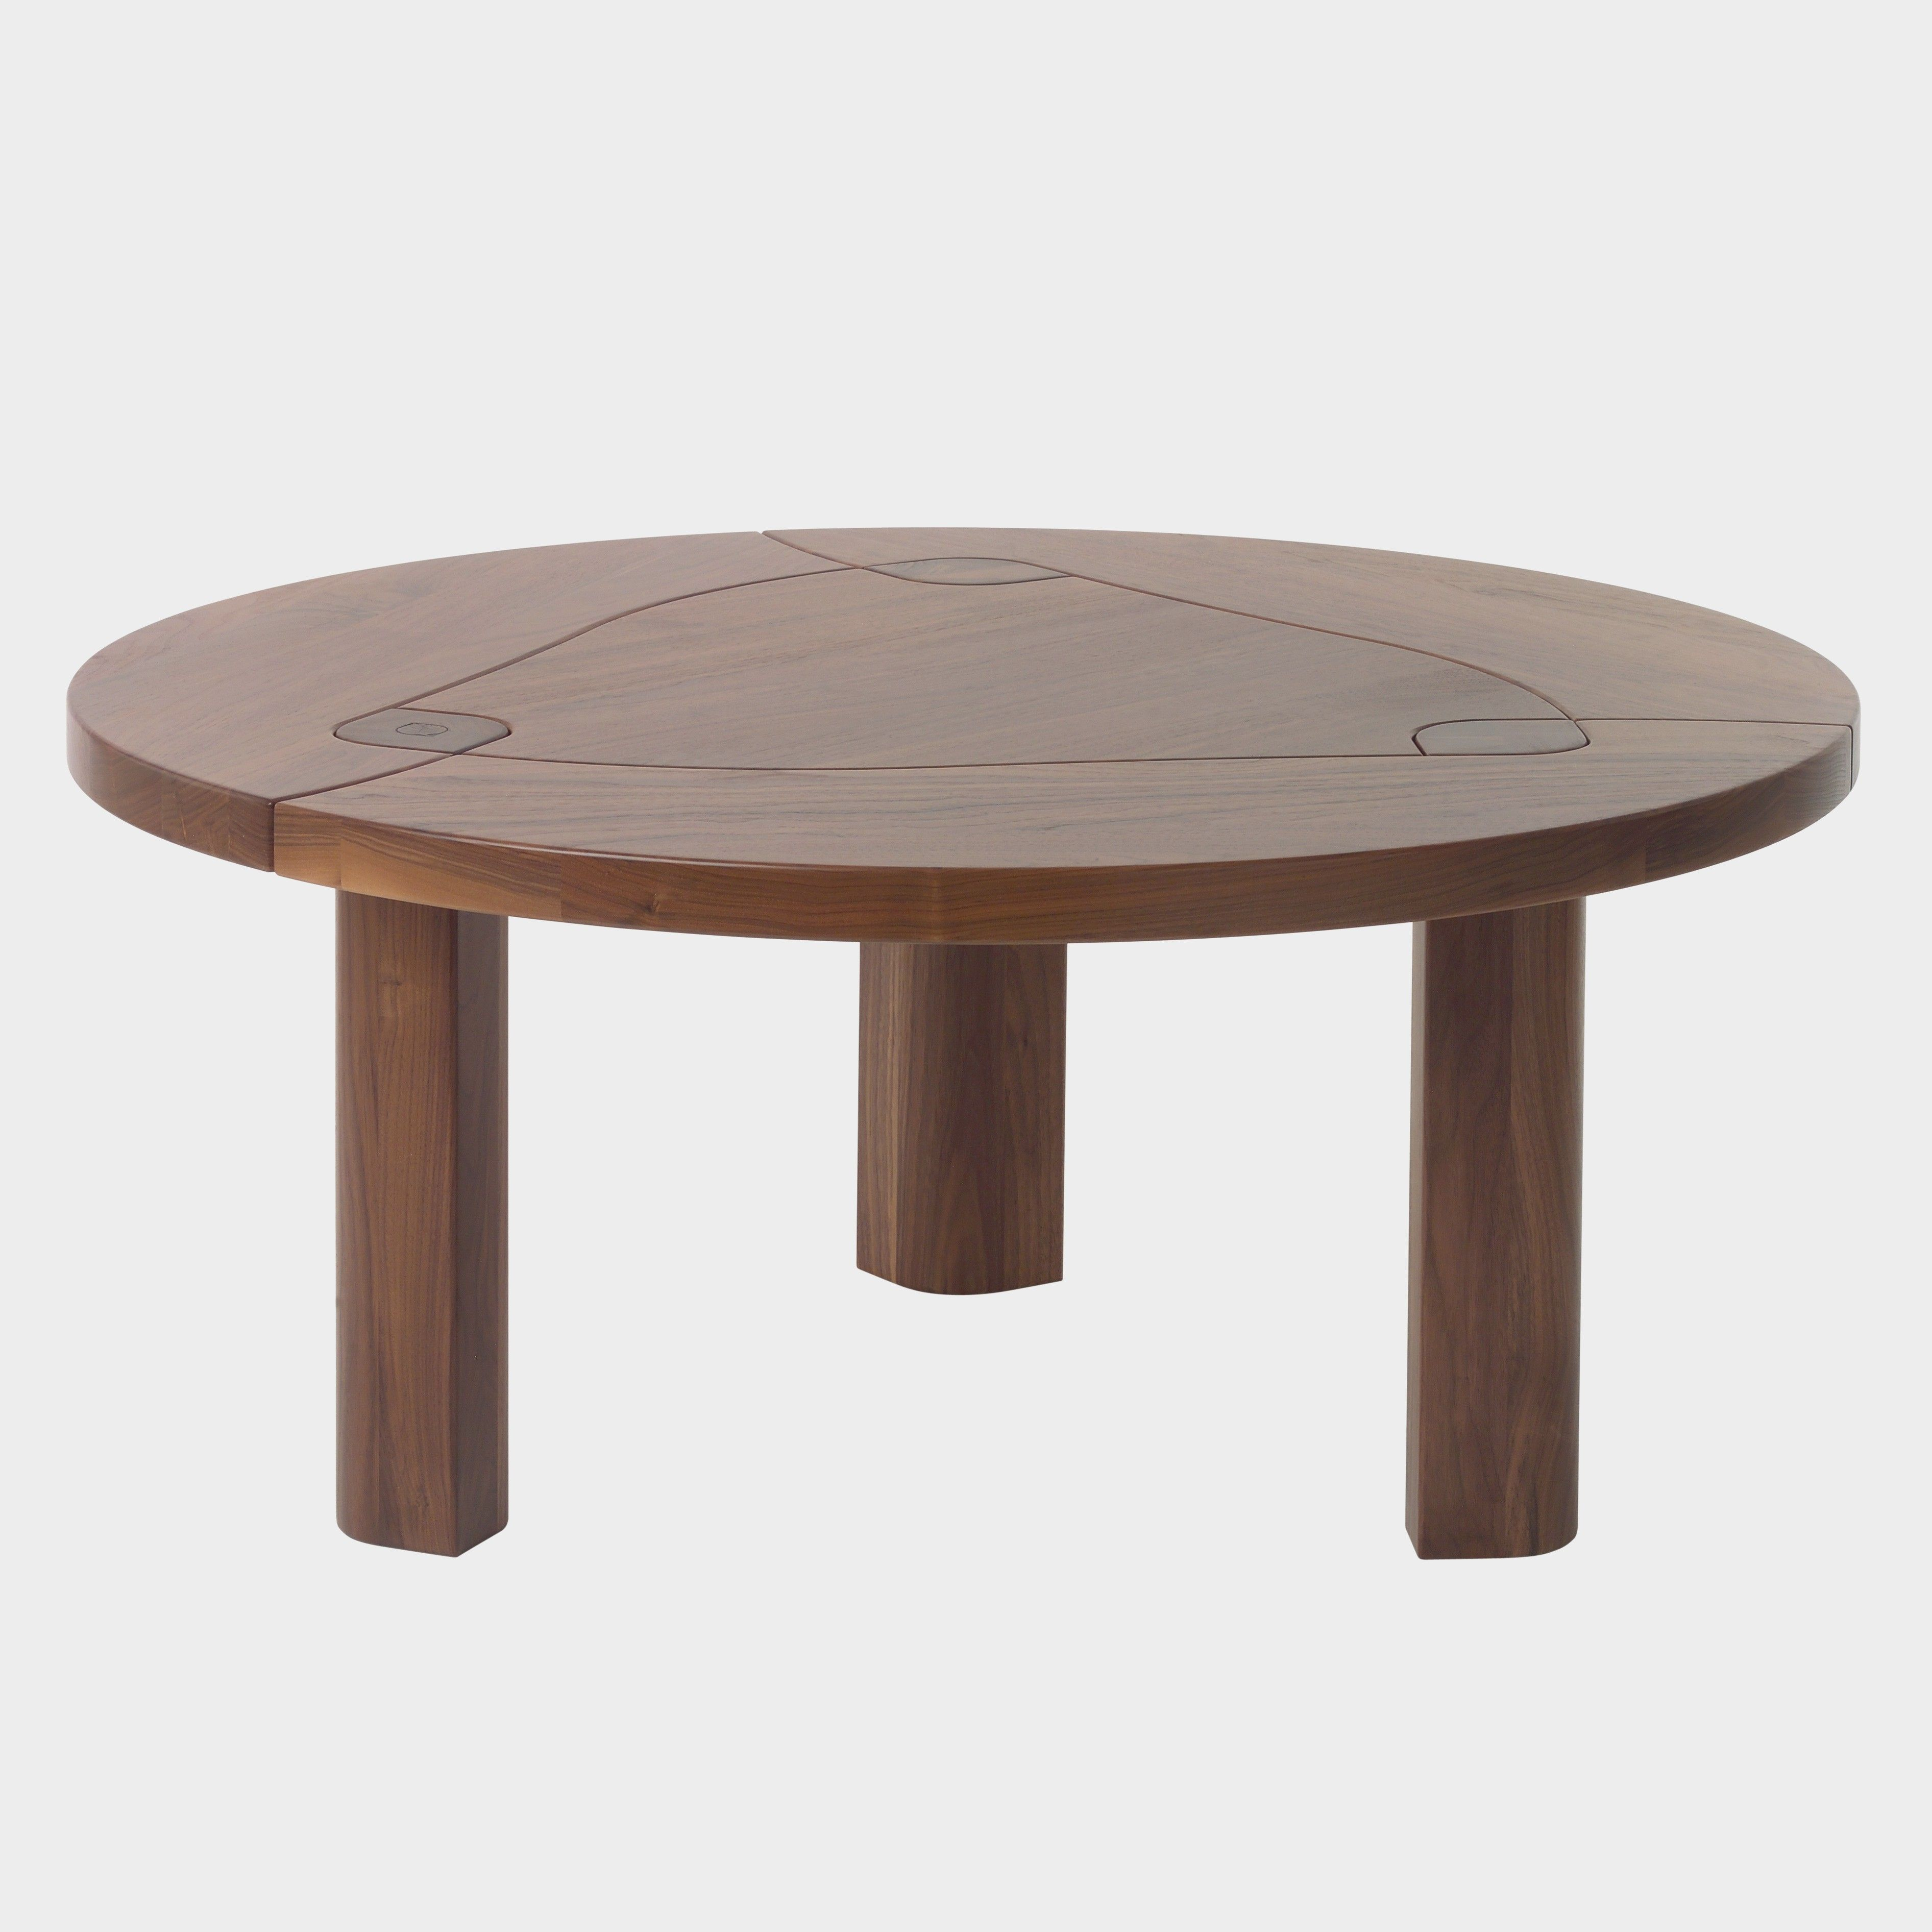 10 36 Inch Round Coffee Table Gallery Di 2020